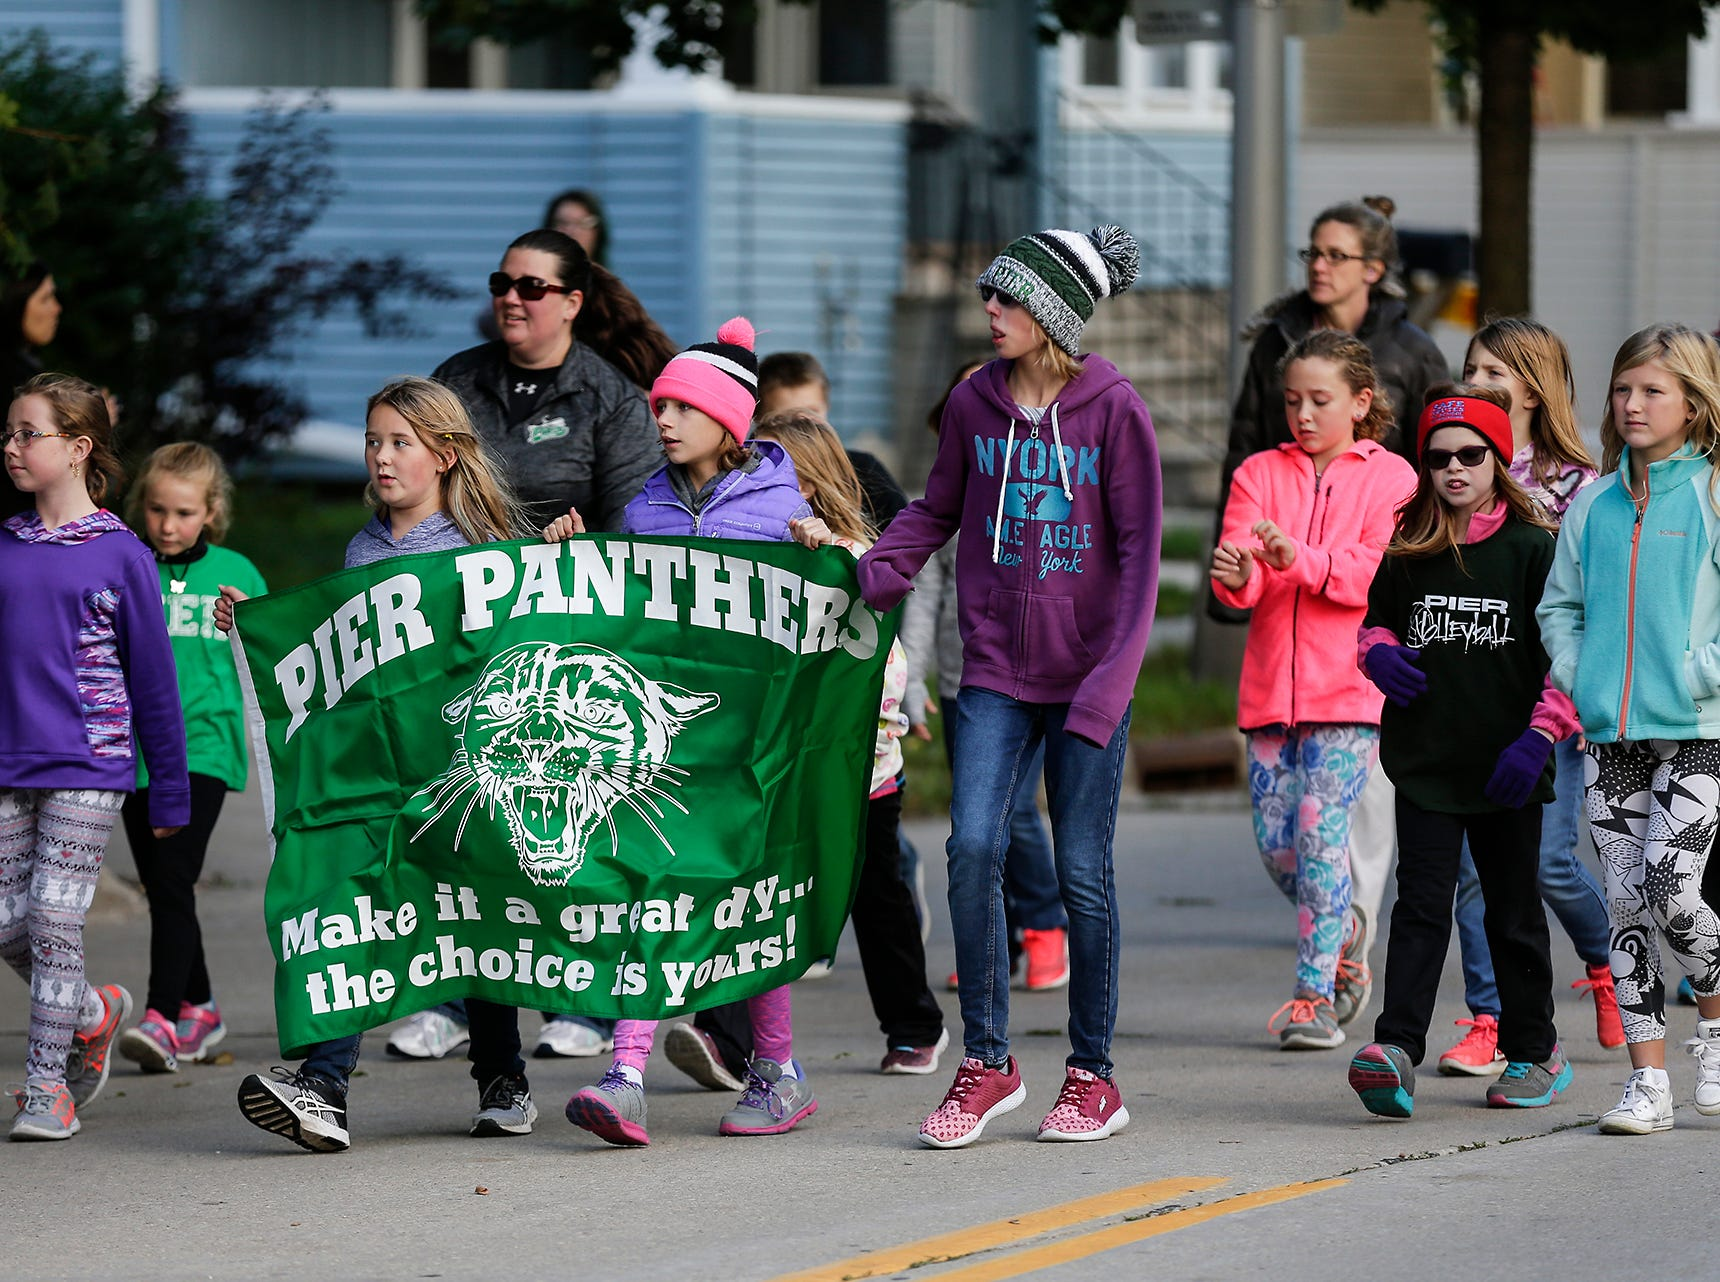 Students of Pier Elementary School marched in the Fond du Lac High School football homecoming parade Friday, Sept. 28, 2018, which went down portions of Martin Avenue and Ninth Street in Fond du Lac, Wisconsin.